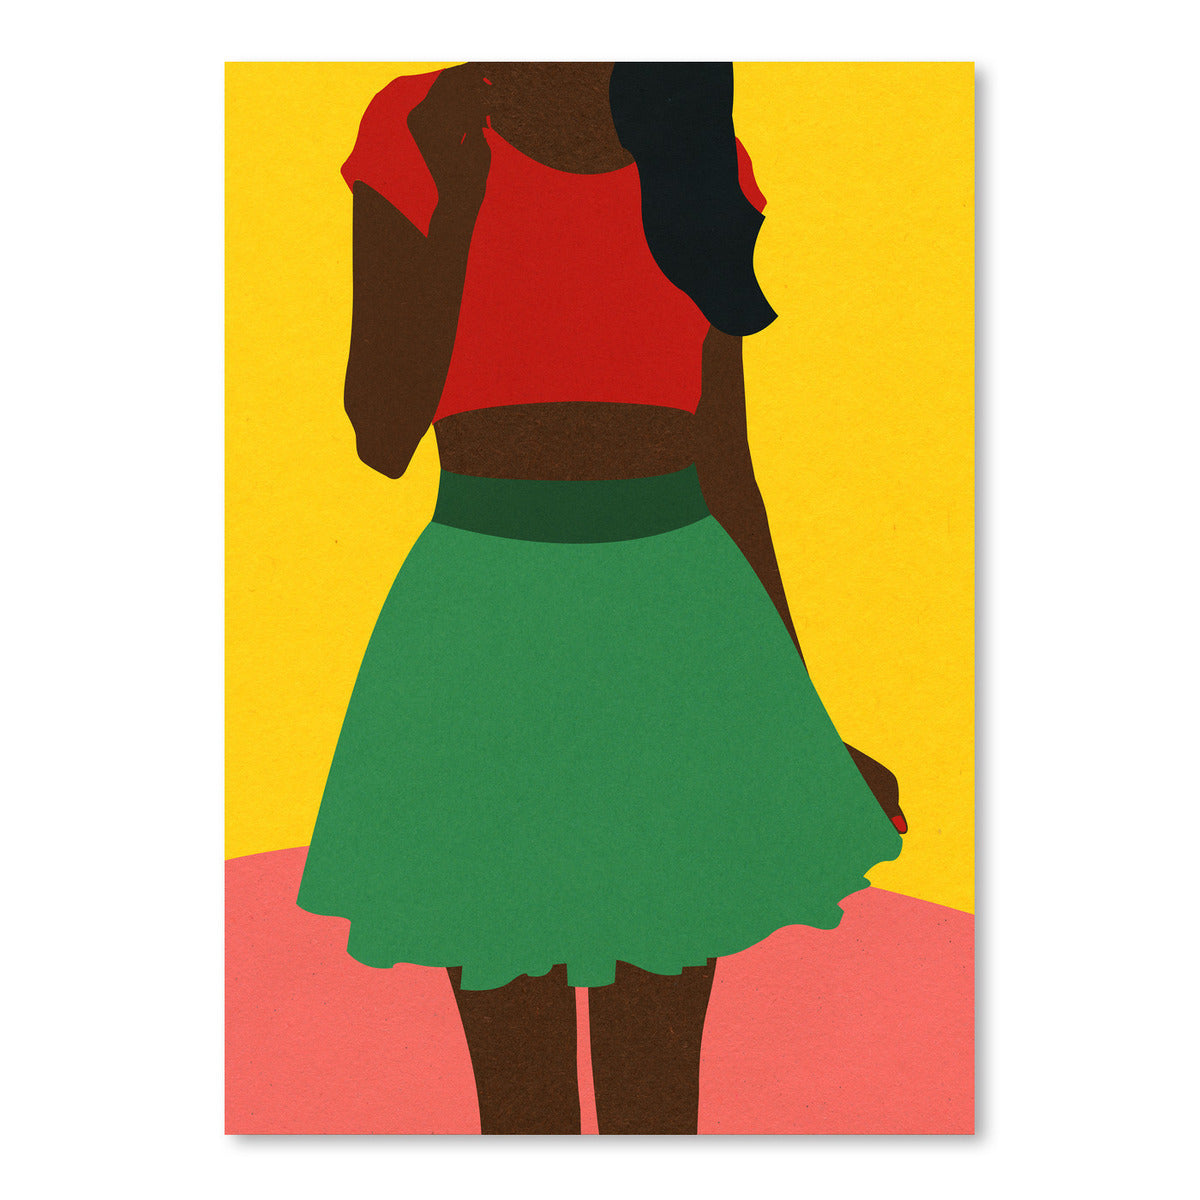 Girl With Top And Skirt by Rosi Feist - Art Print - Americanflat